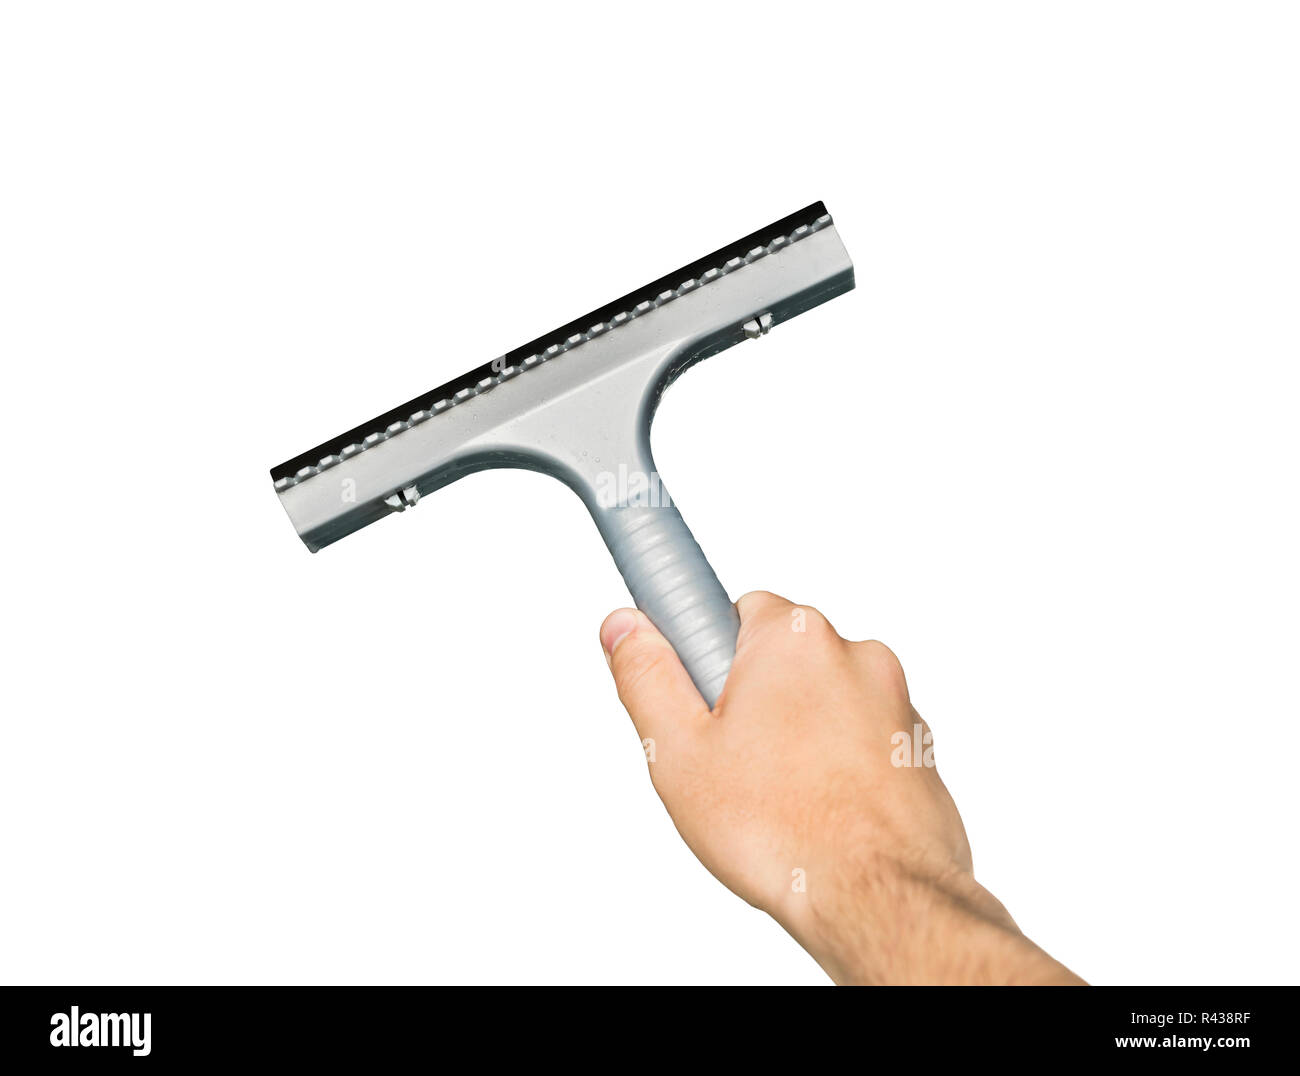 Cleanness Stock Photos Cleanness Stock Images Alamy